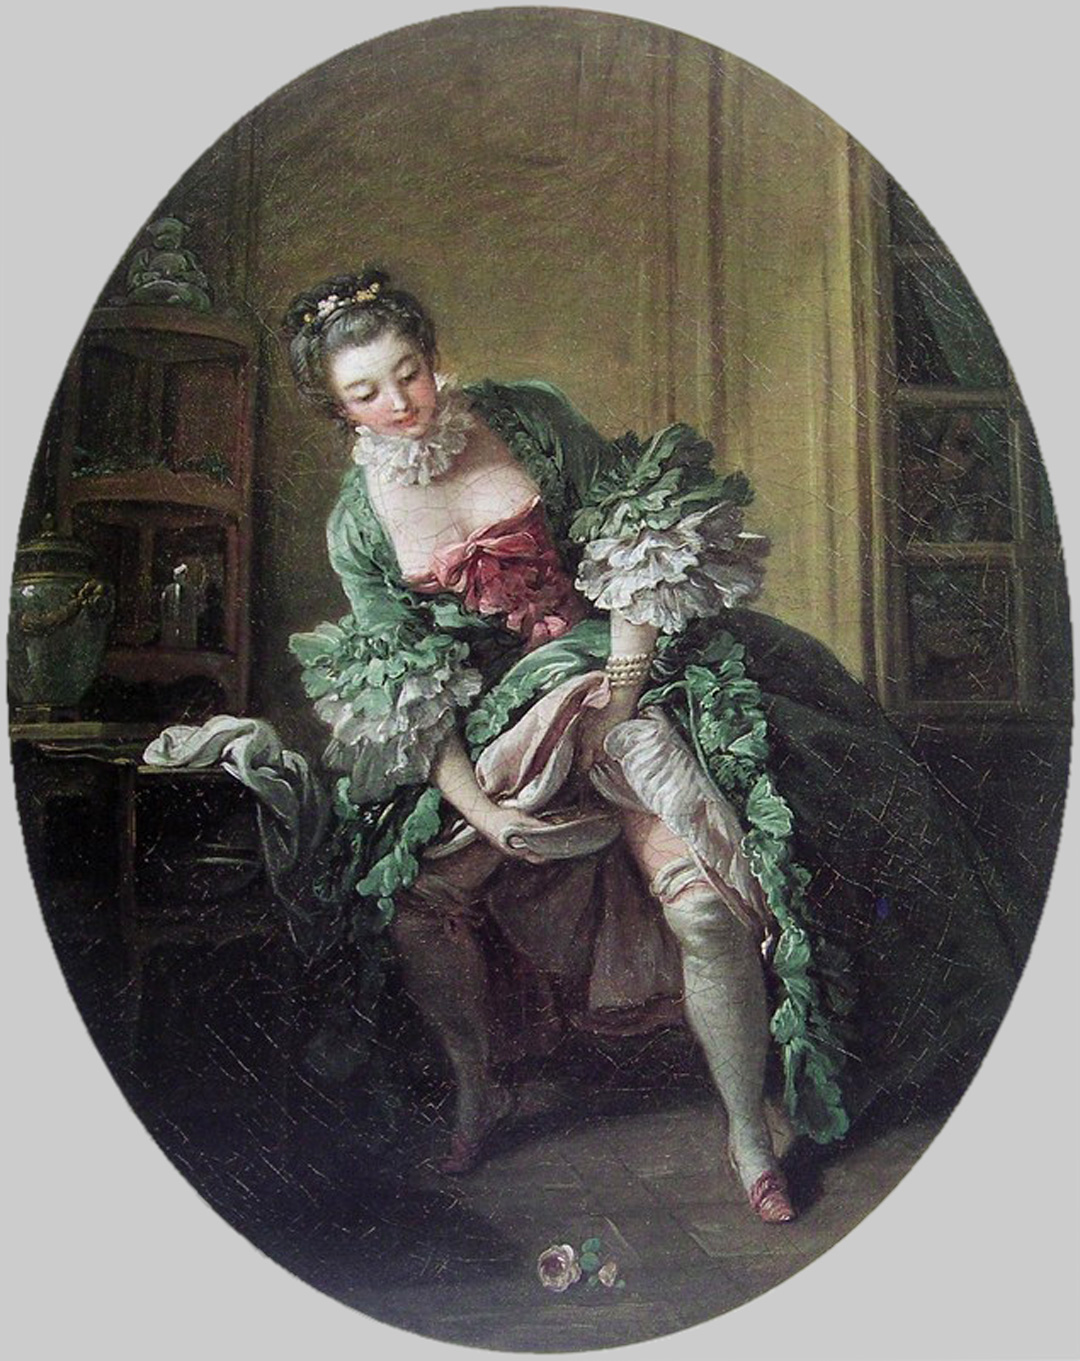 Women going to the bathroom standing up - 18th Century Woman Stands While Urinating Into Chamber Pot